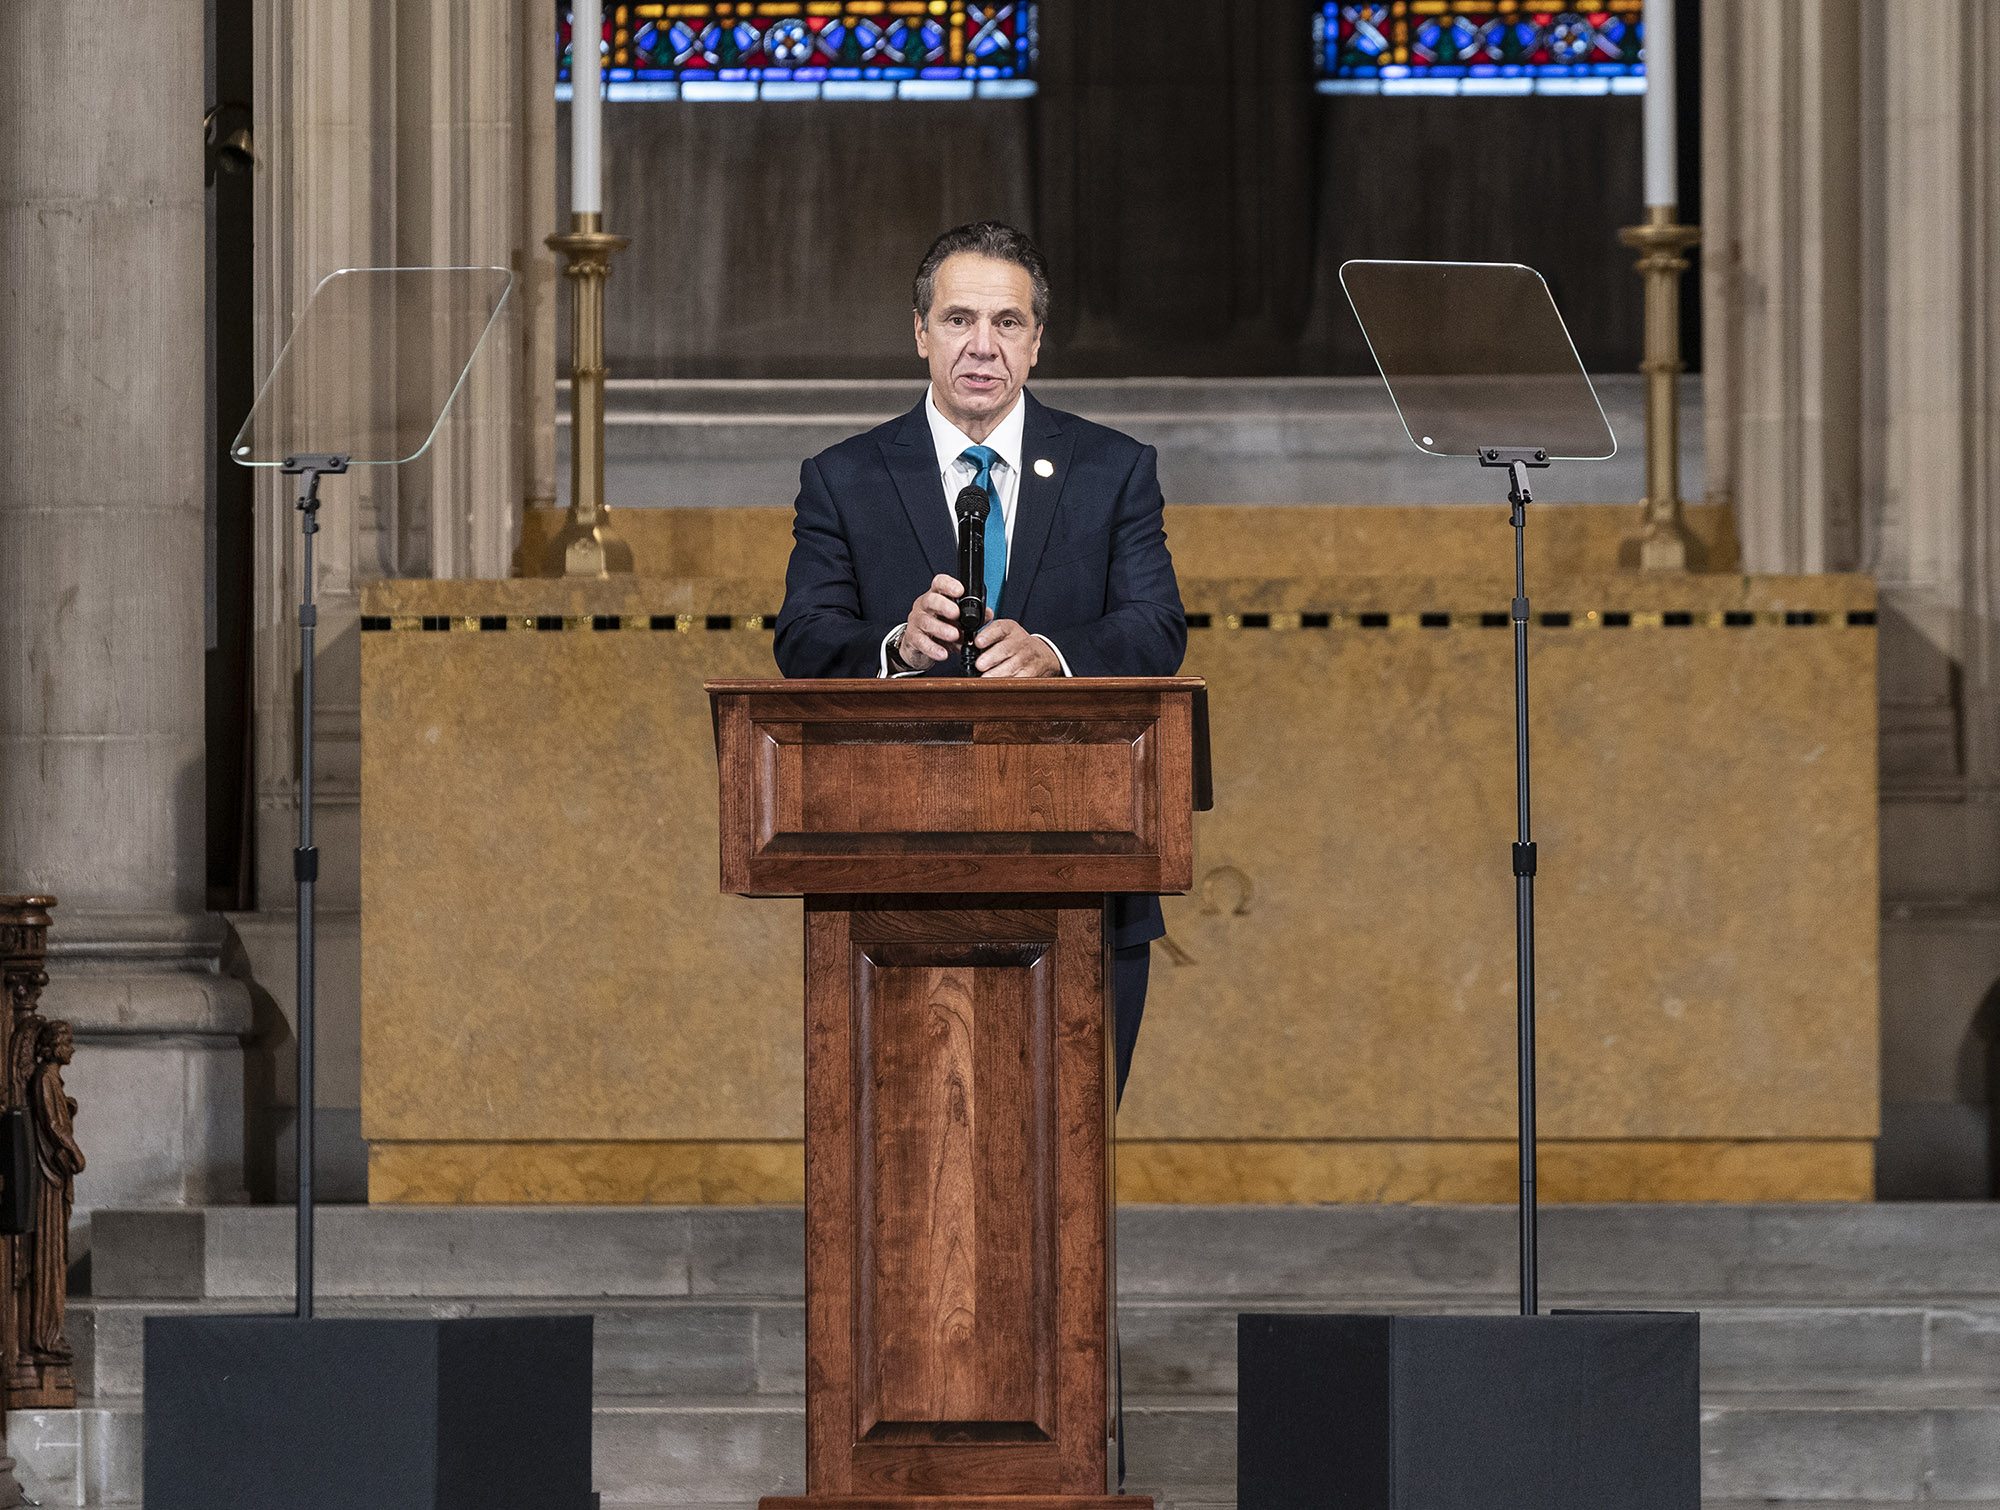 Governor Andrew Cuomo delivers remarks on the inequities in the Trump administration's vaccine distribution plan at Riverside Church in New York, on November 15.